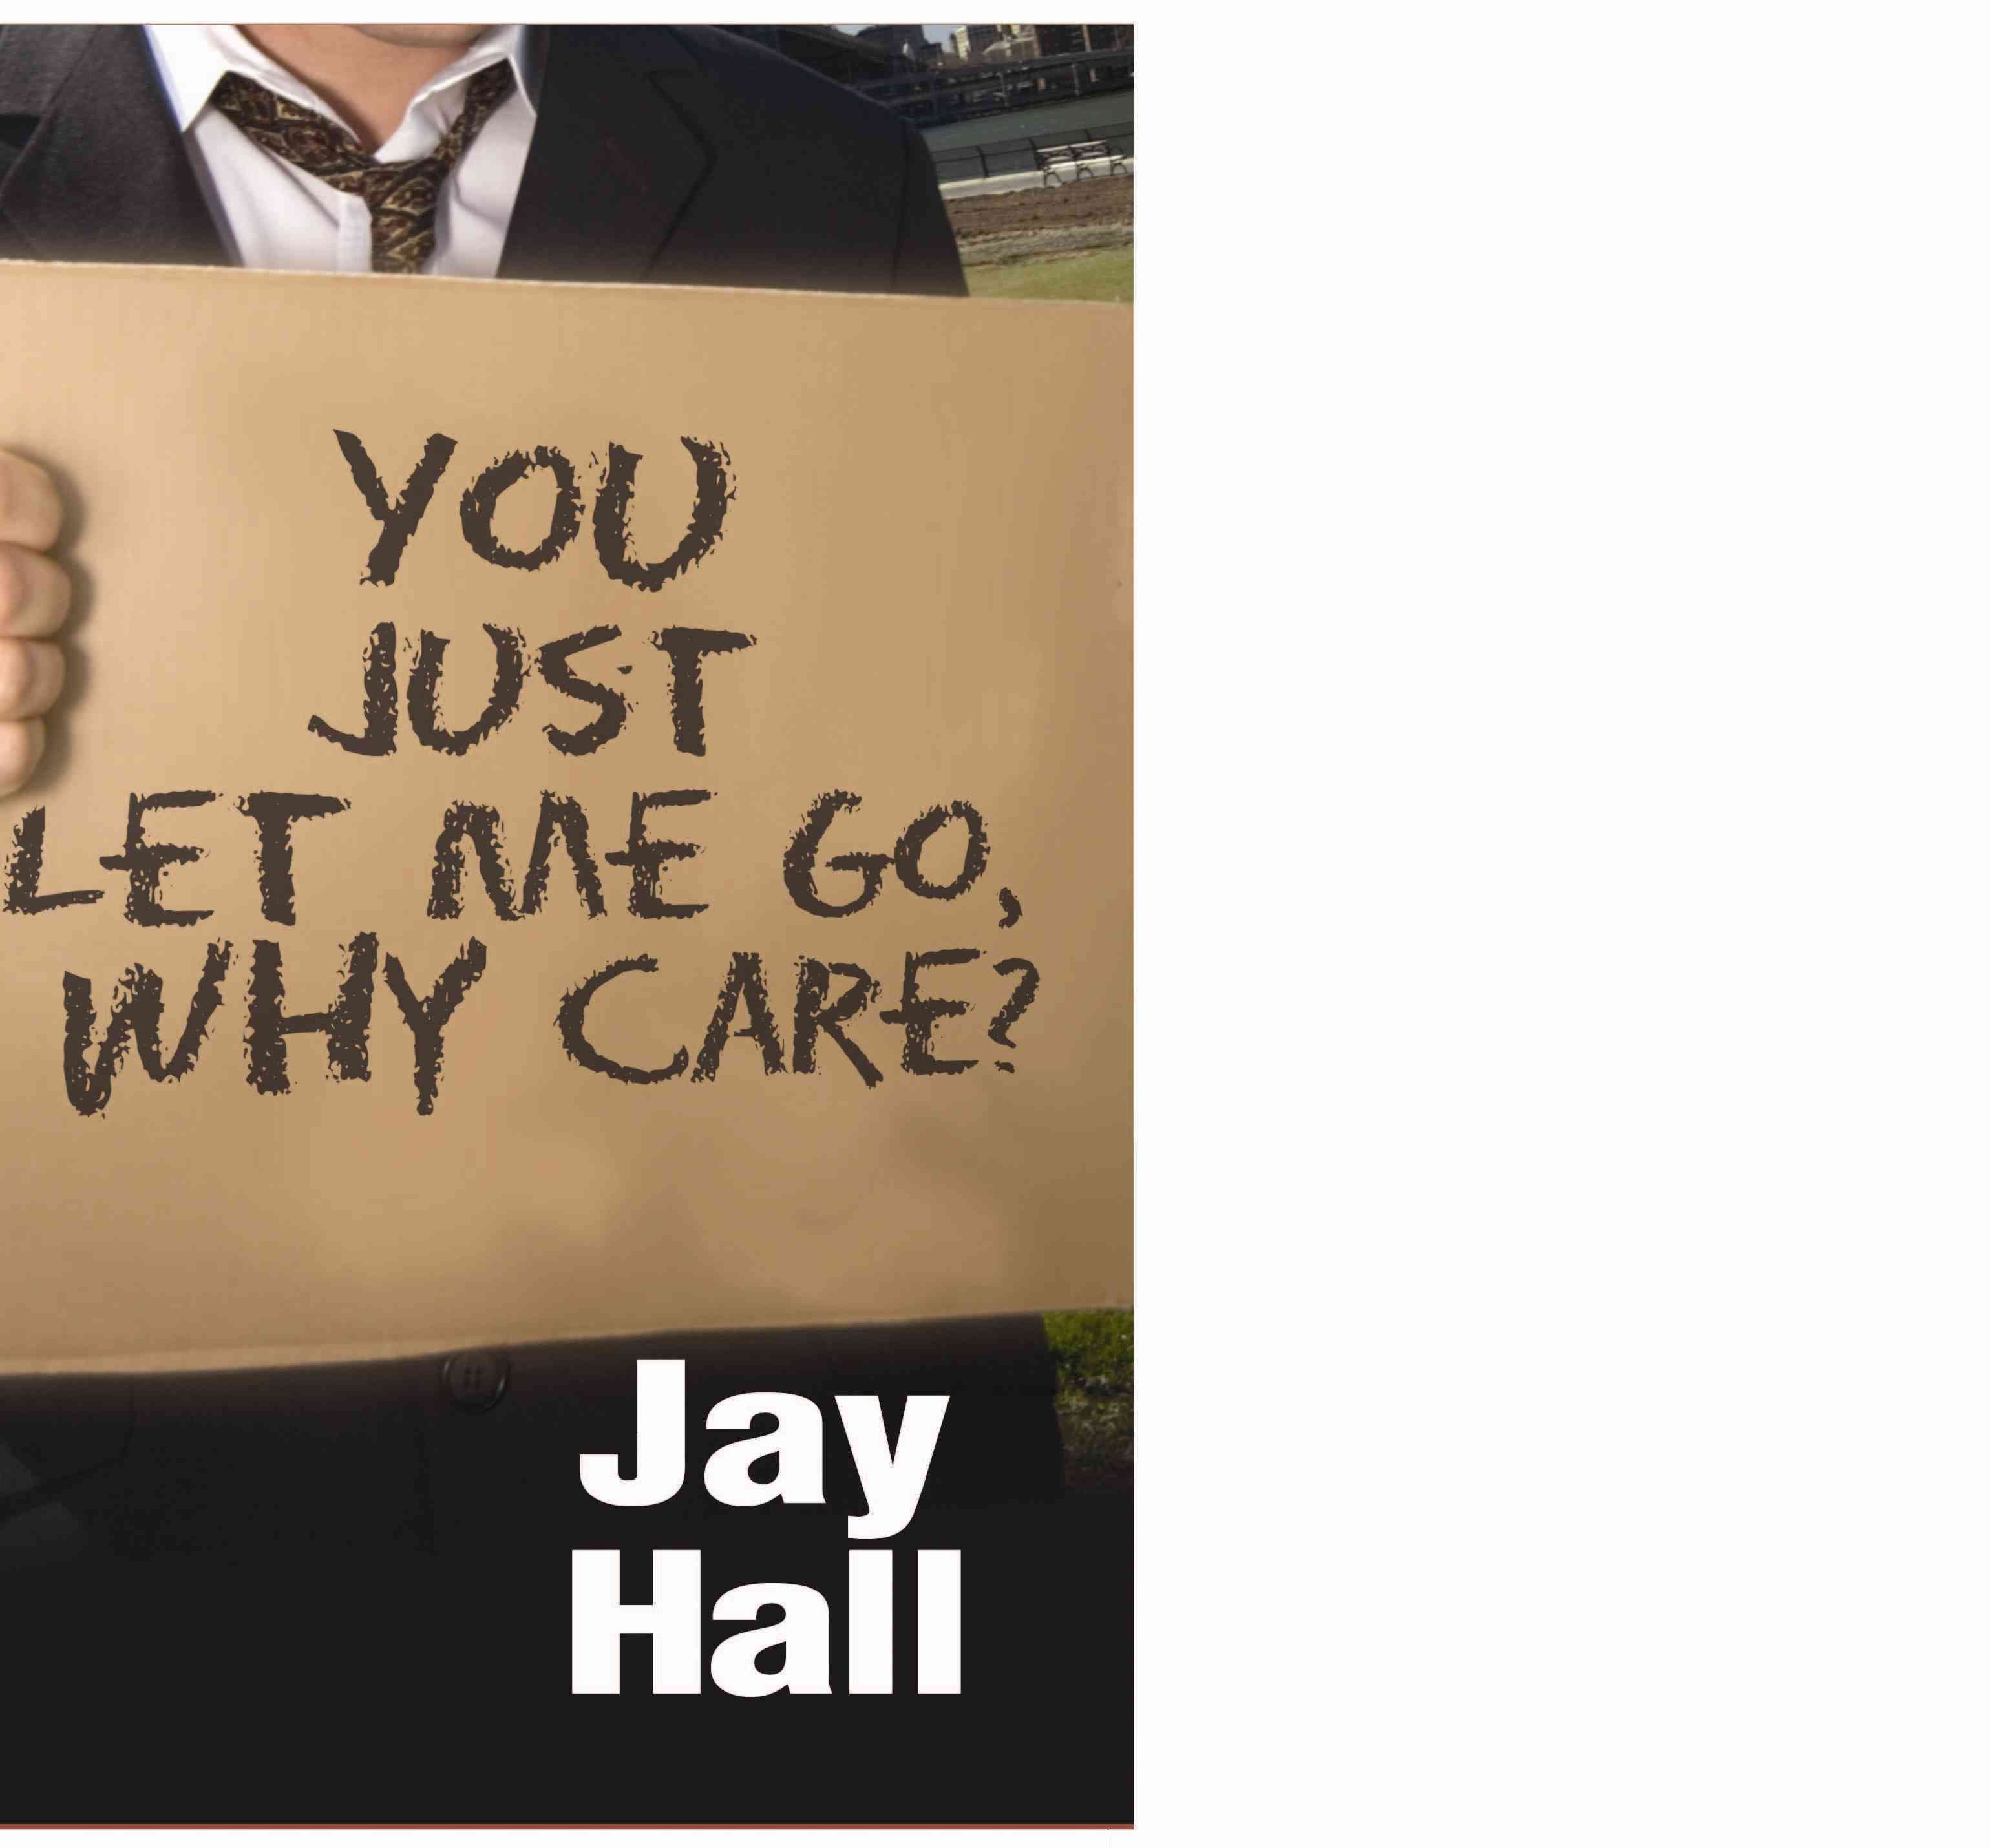 You Just Let Me Go, Why Care? - Jay Hall